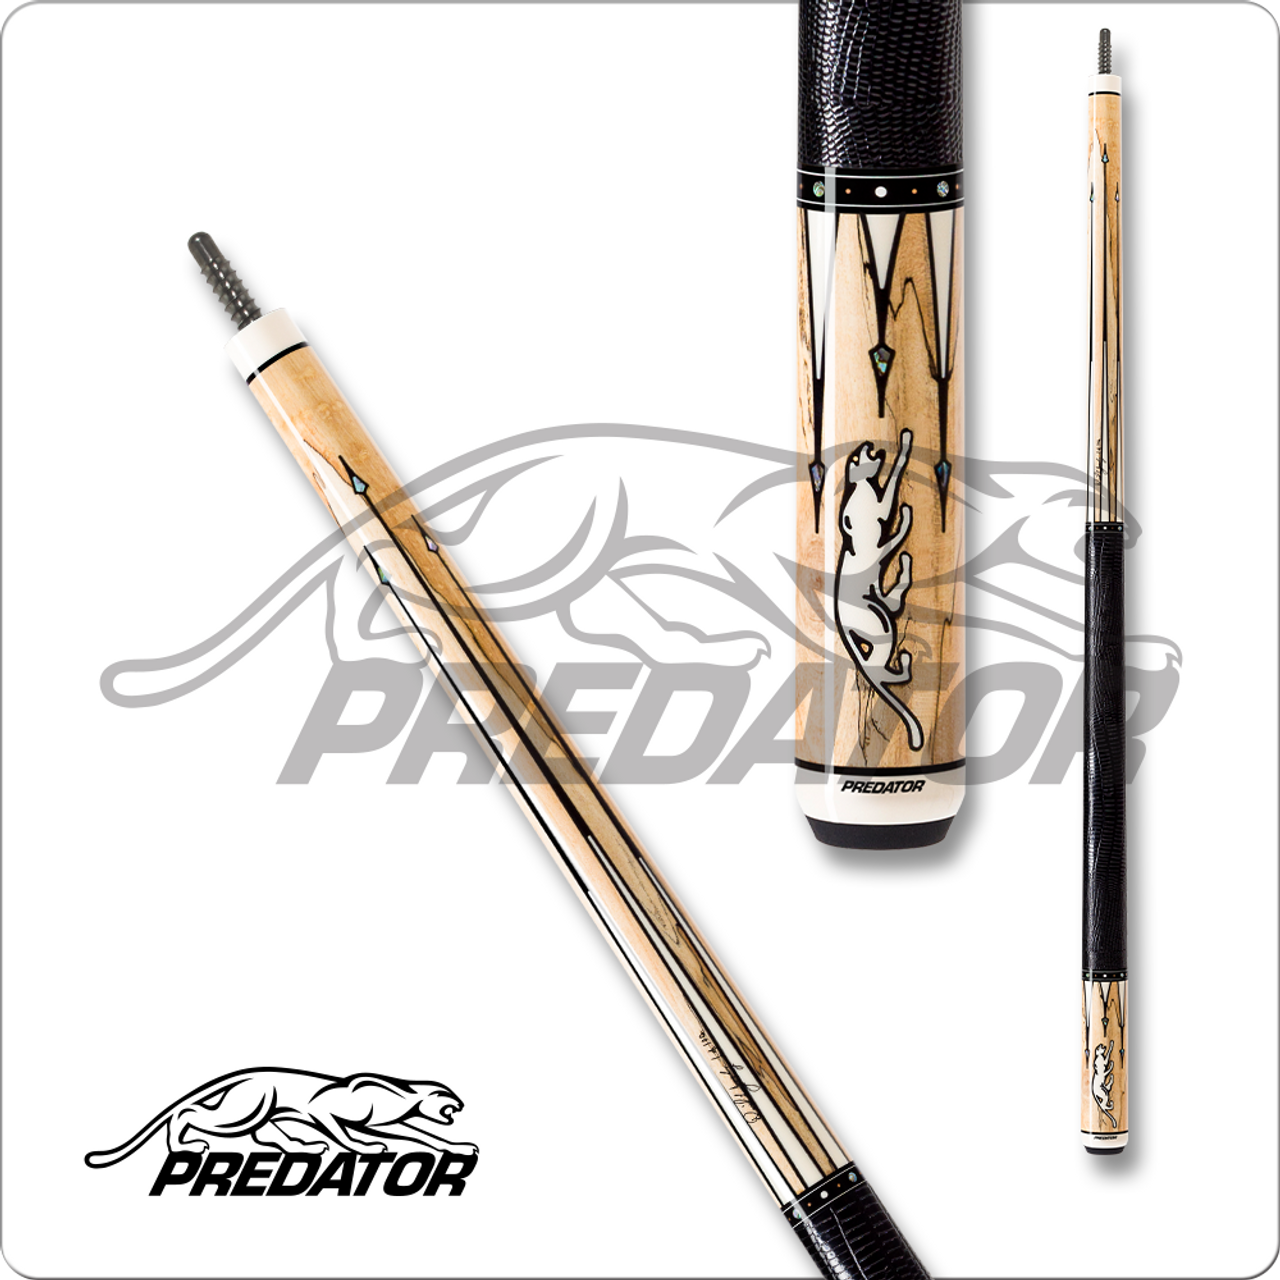 Predator Jacoby Panthera 4-2 Pool Cue